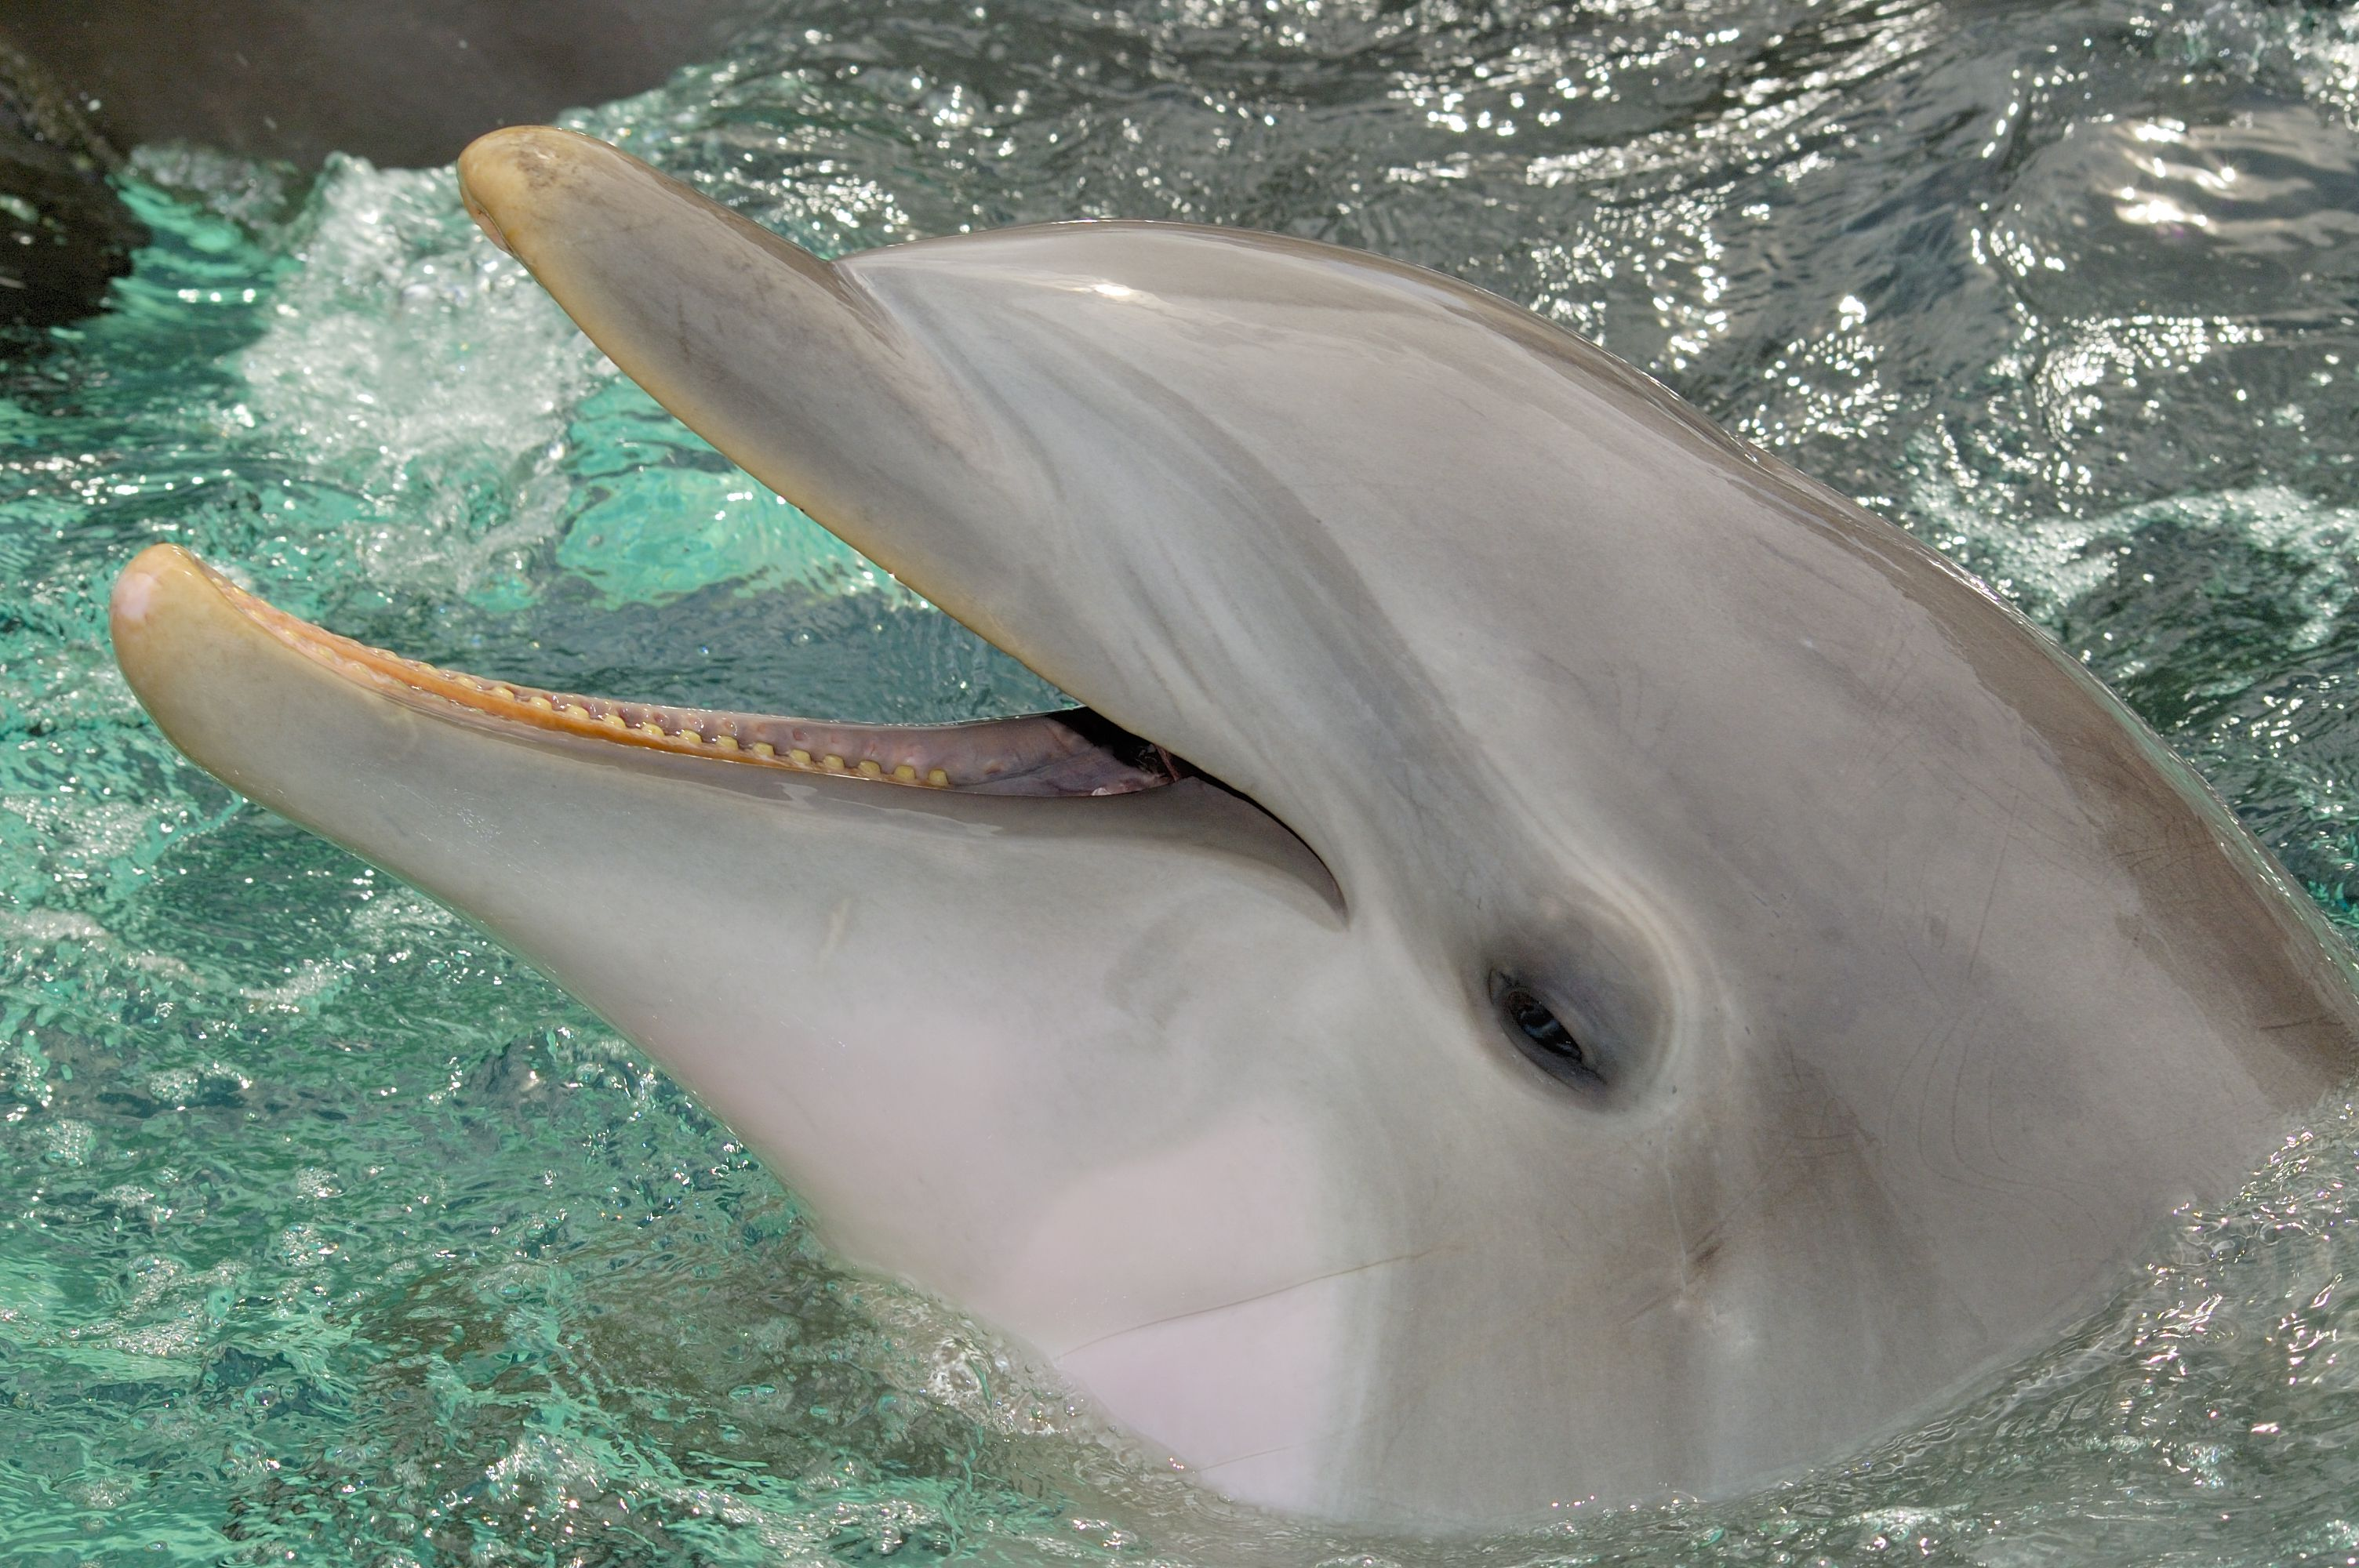 A Bottlenose dolphin with its mouth opened out of the water